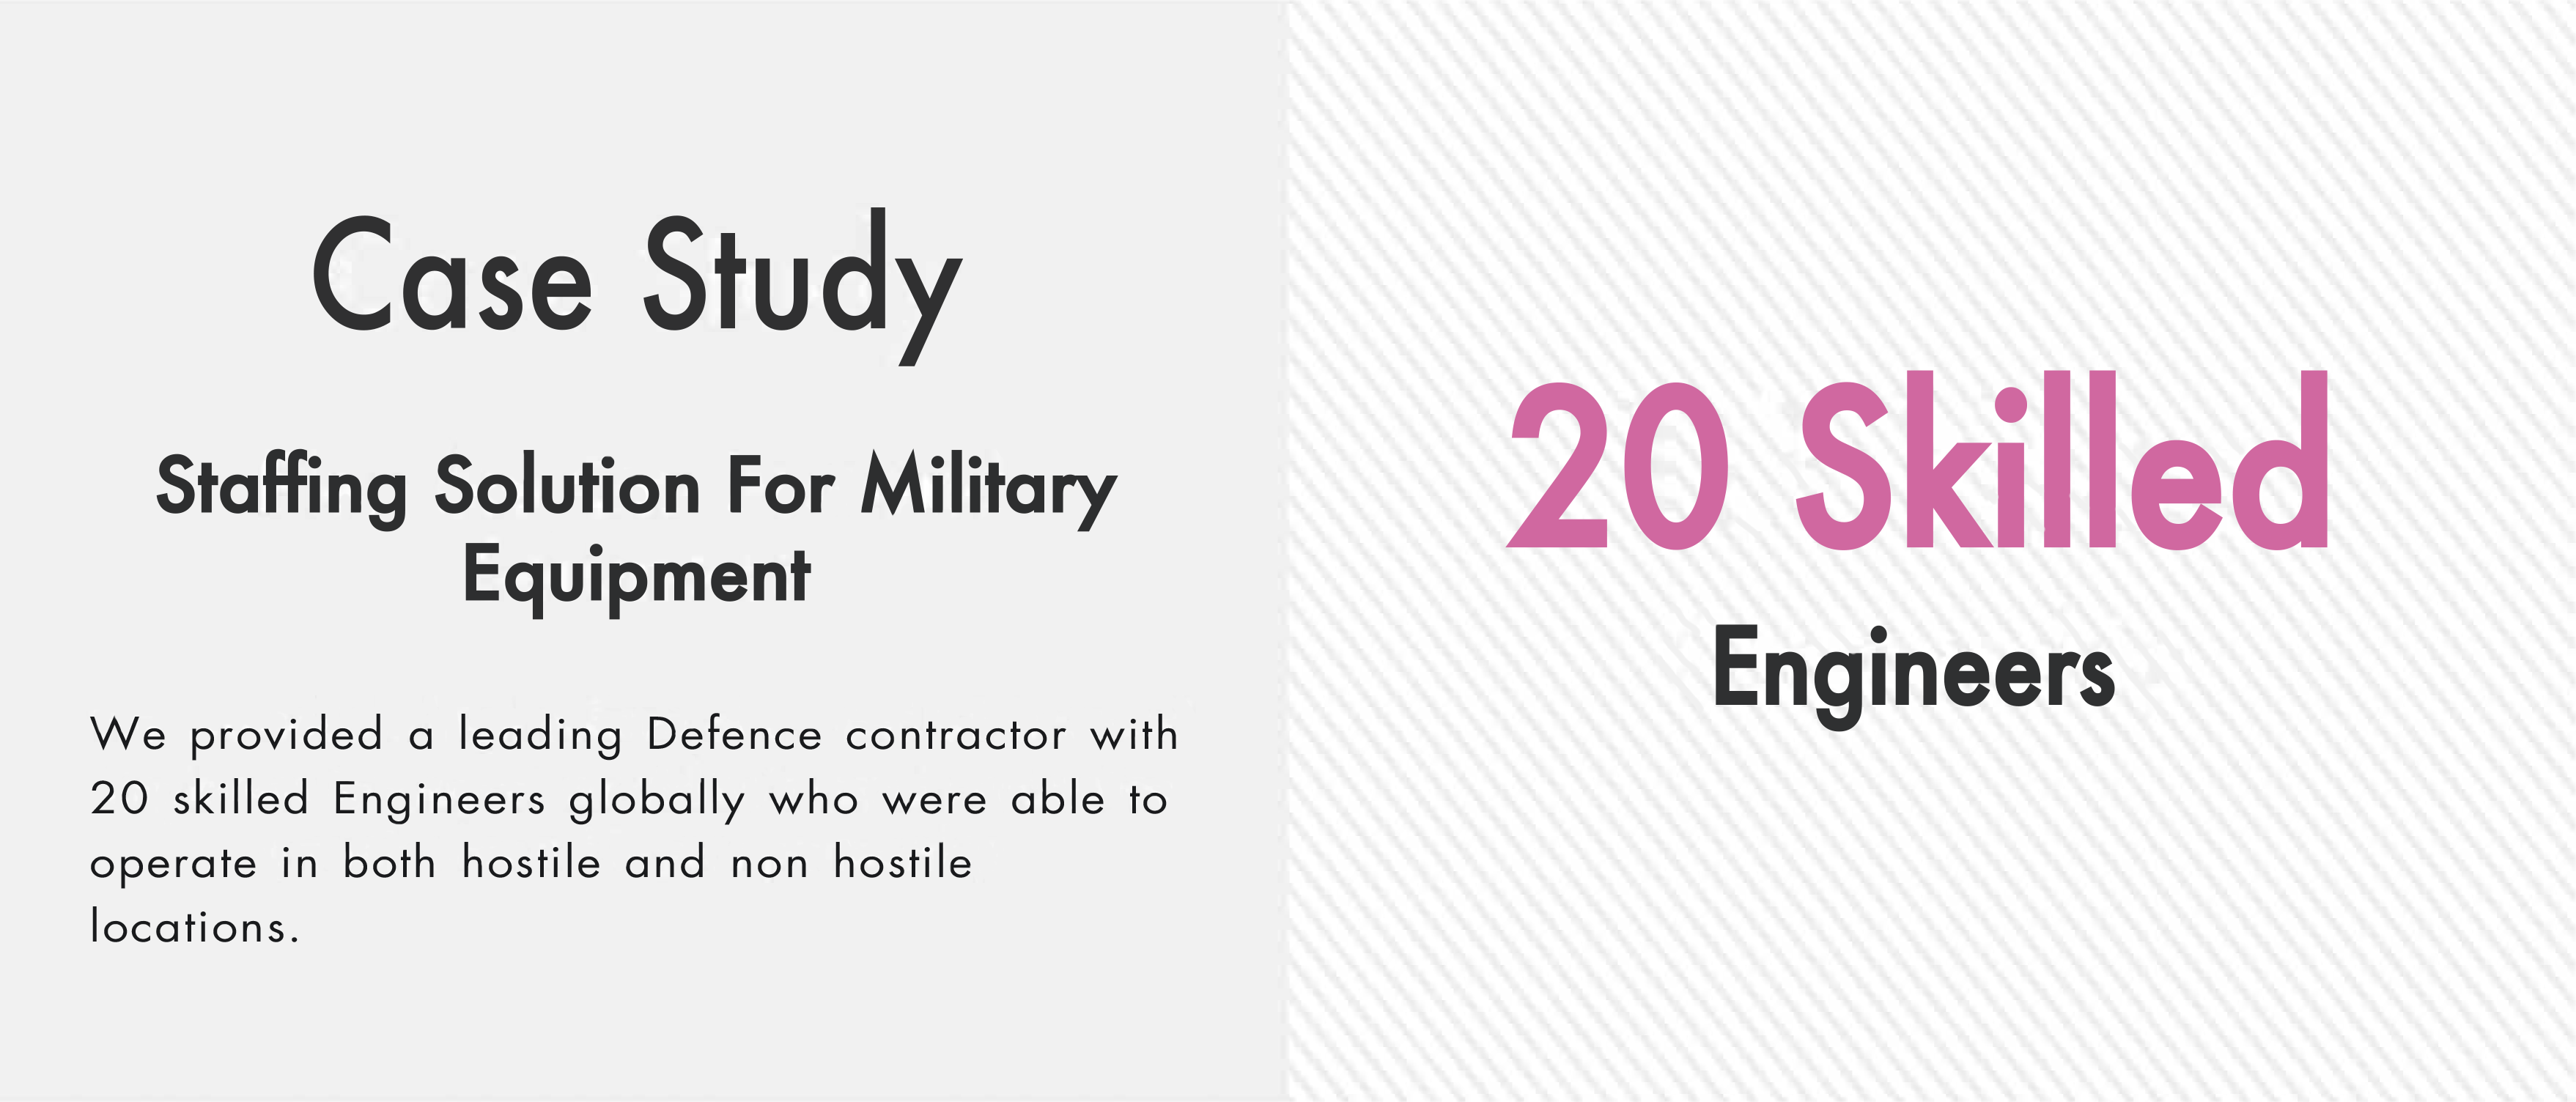 Staffing Solution for Military Equipment